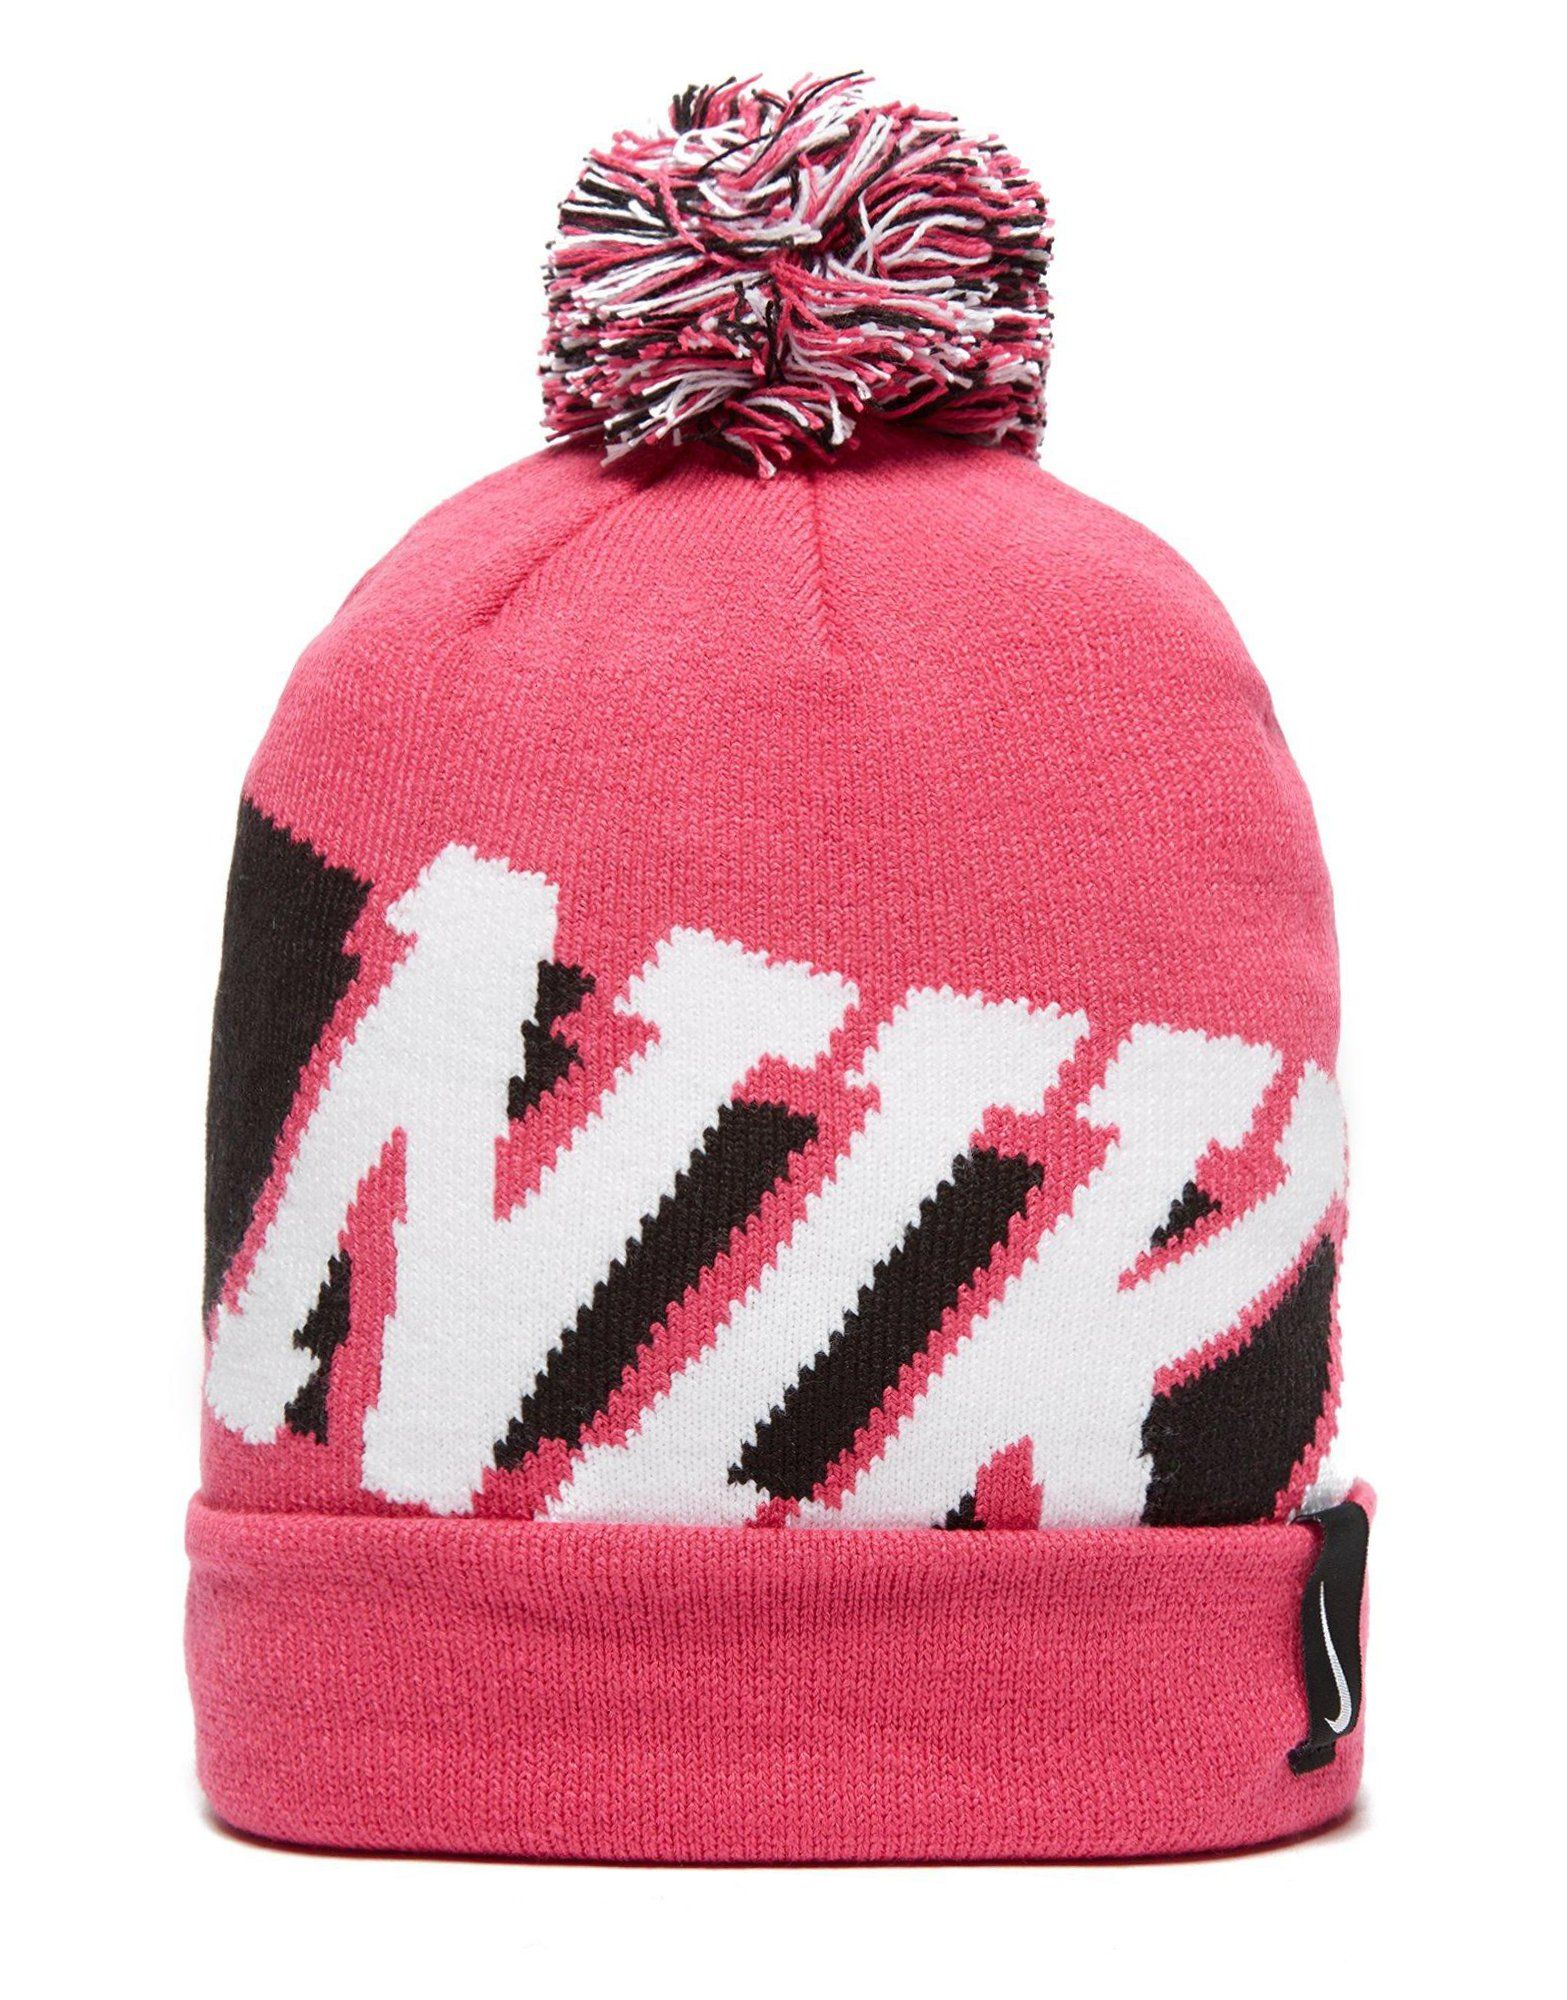 Nike Winter Pom Pom Hat